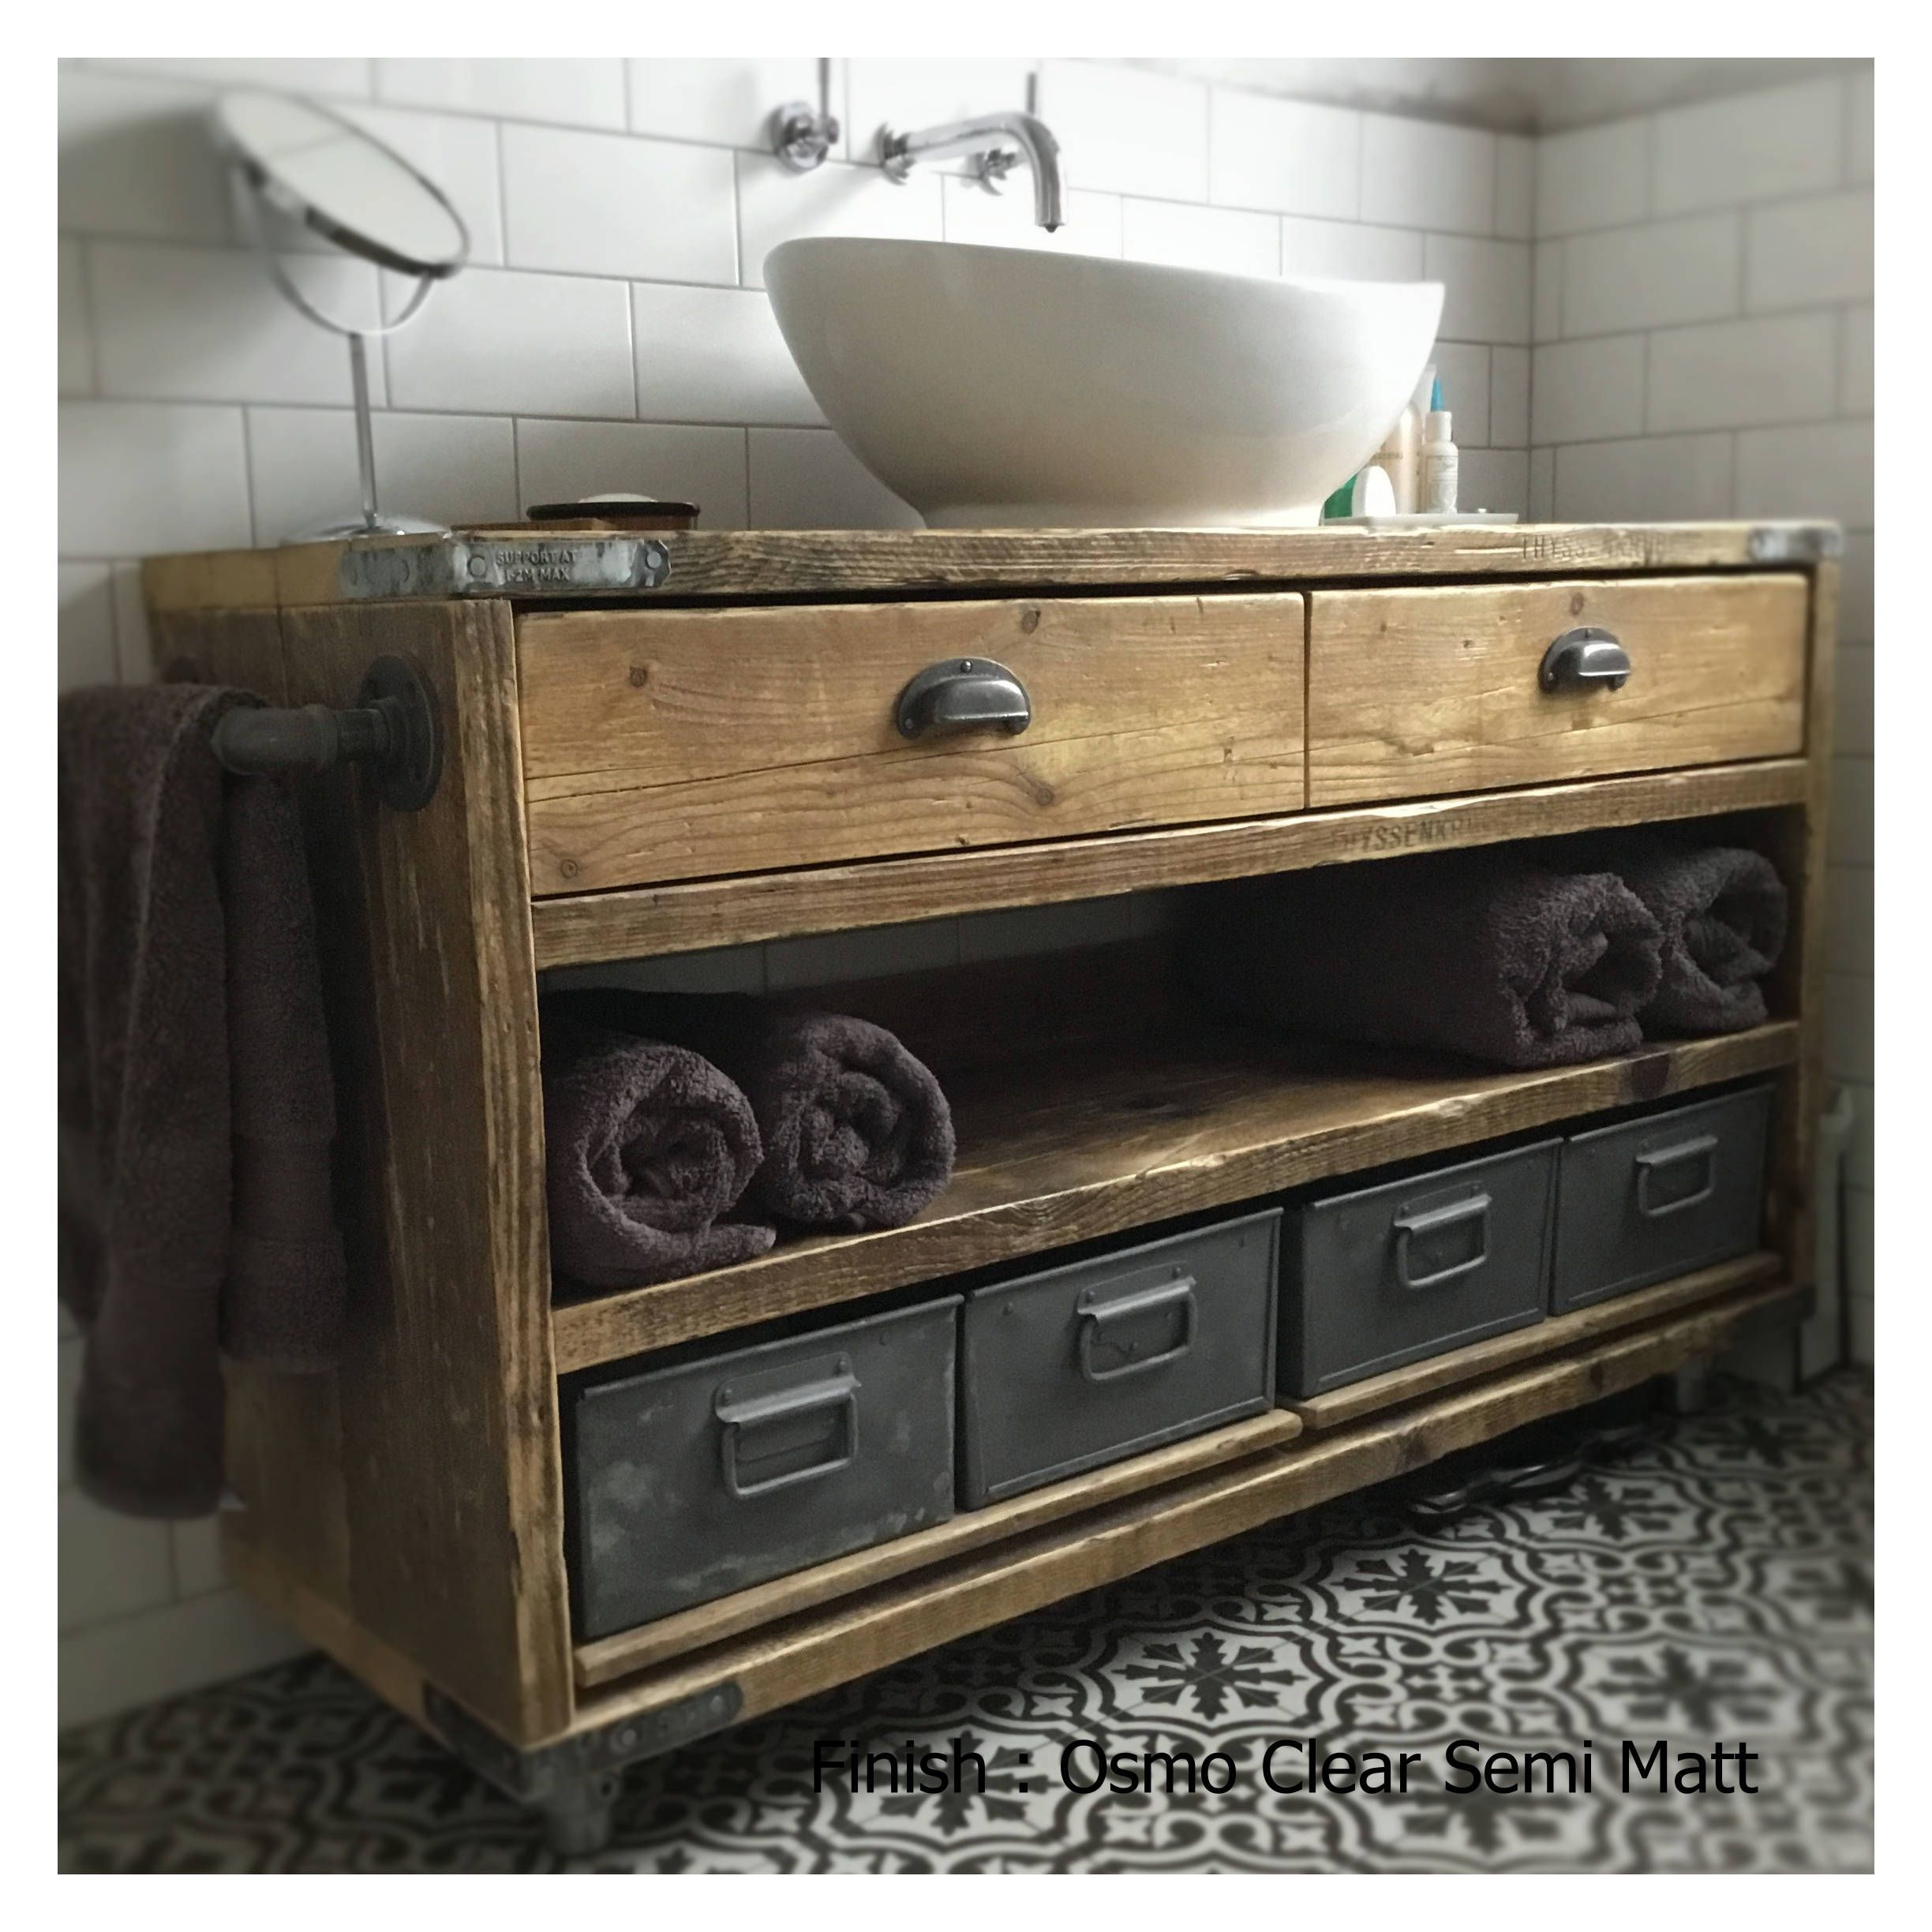 DULWICHIndustrial Bathroom Wash Stand,Wooden Bathroom